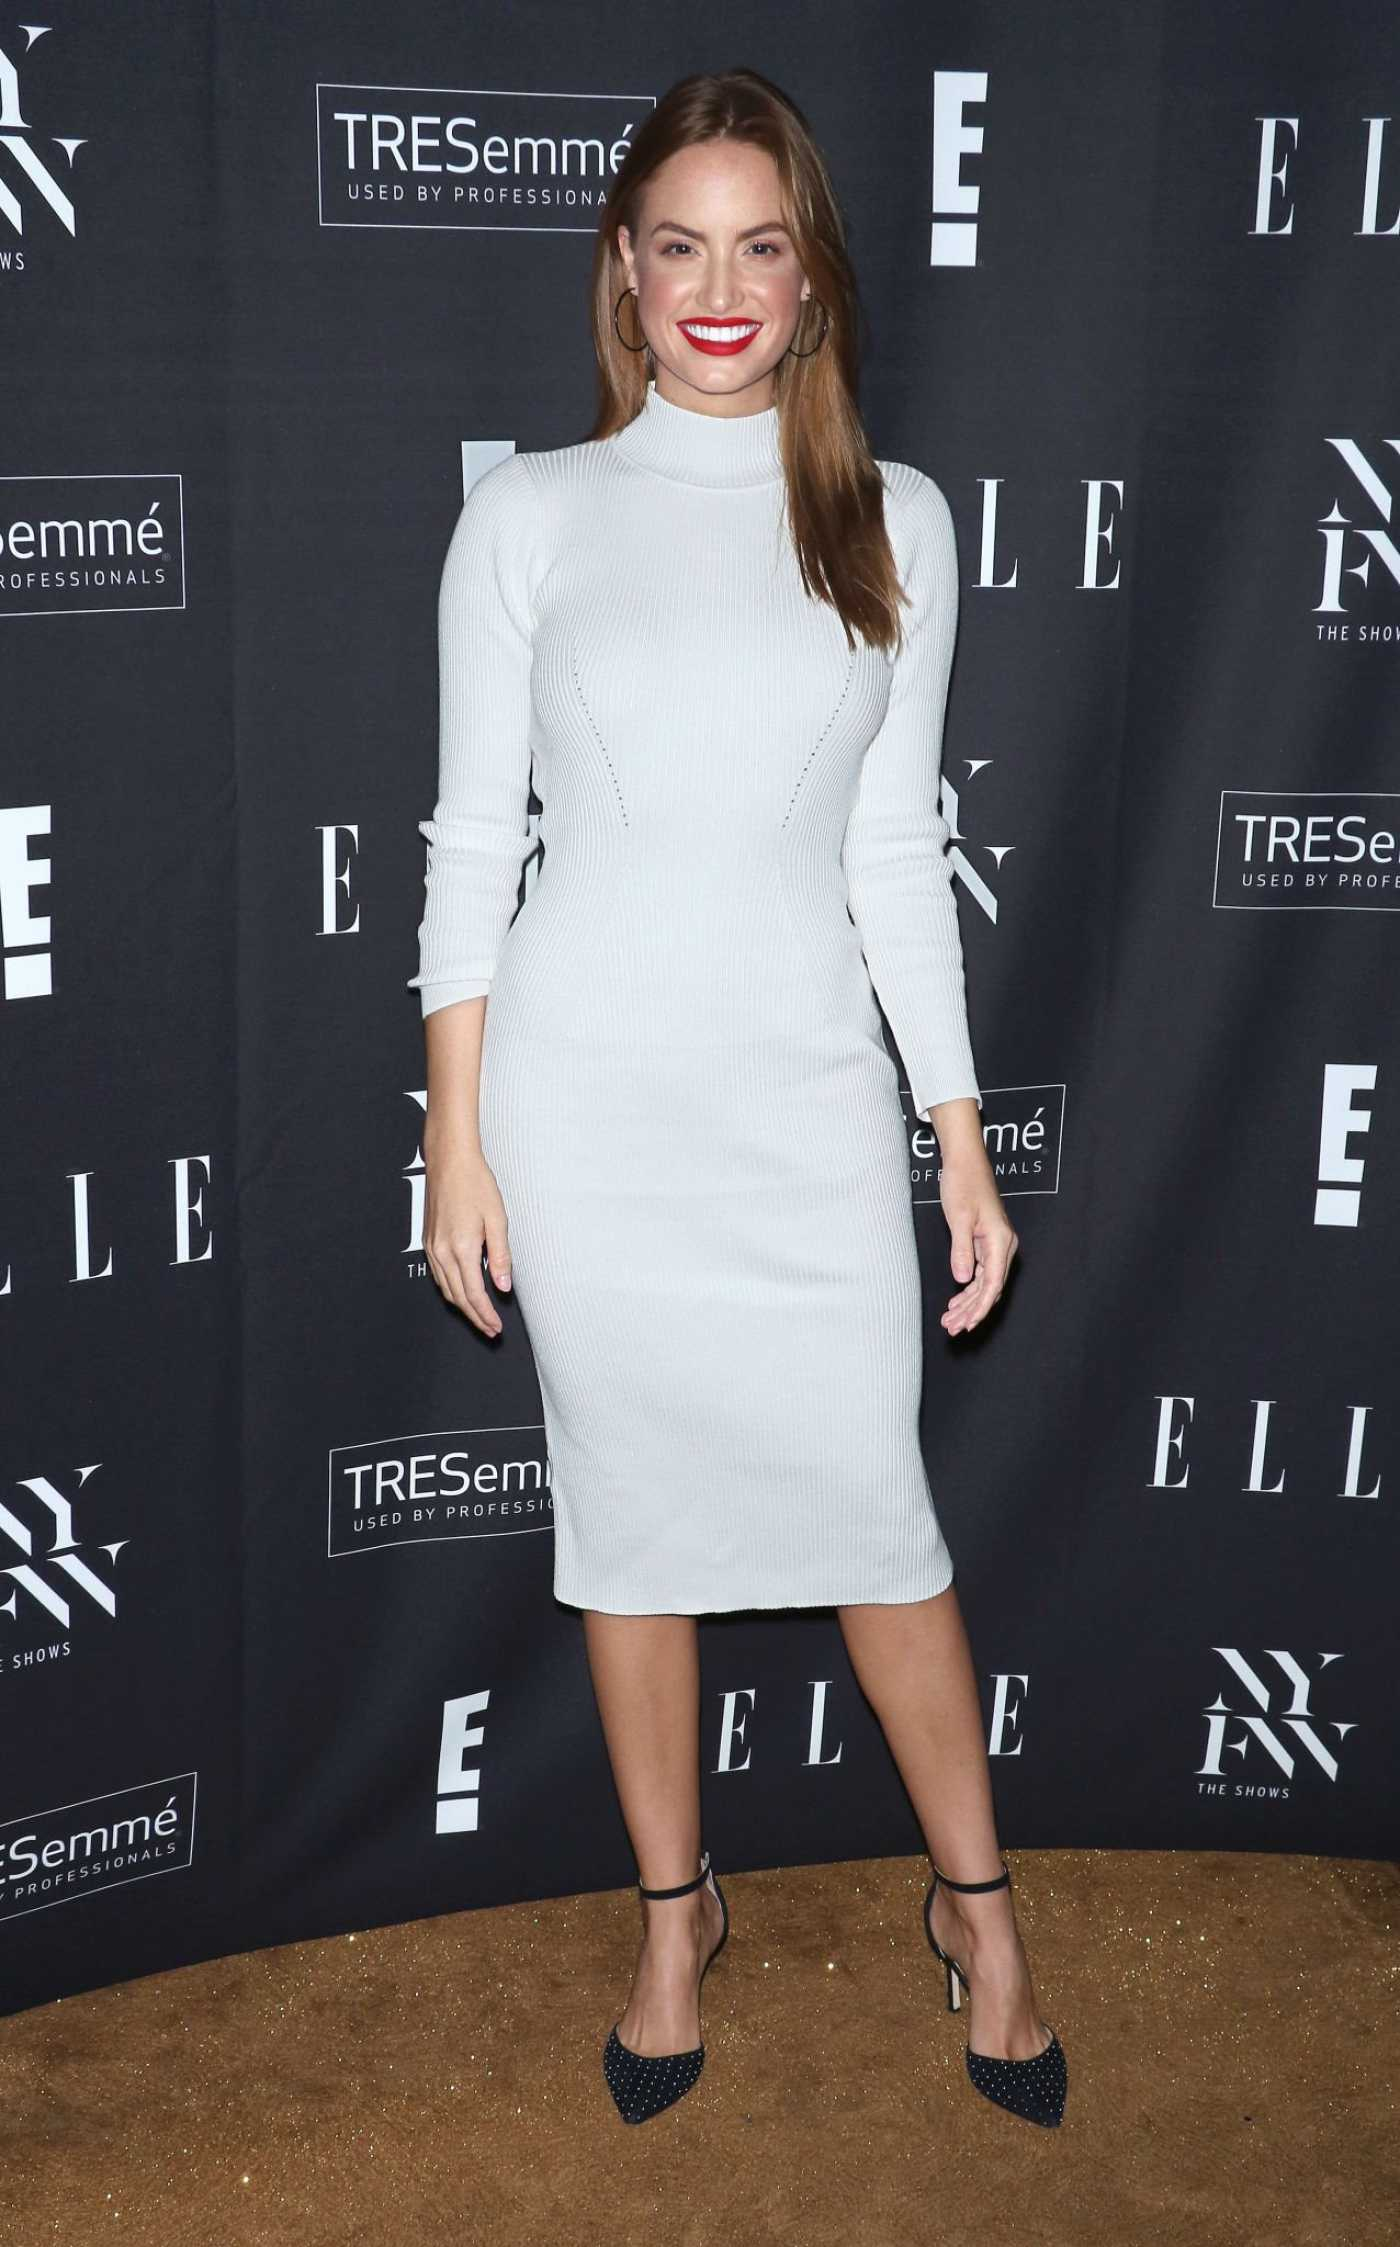 Haley Kalil Attends Elle Kickoff Party in New York 09/04/2019